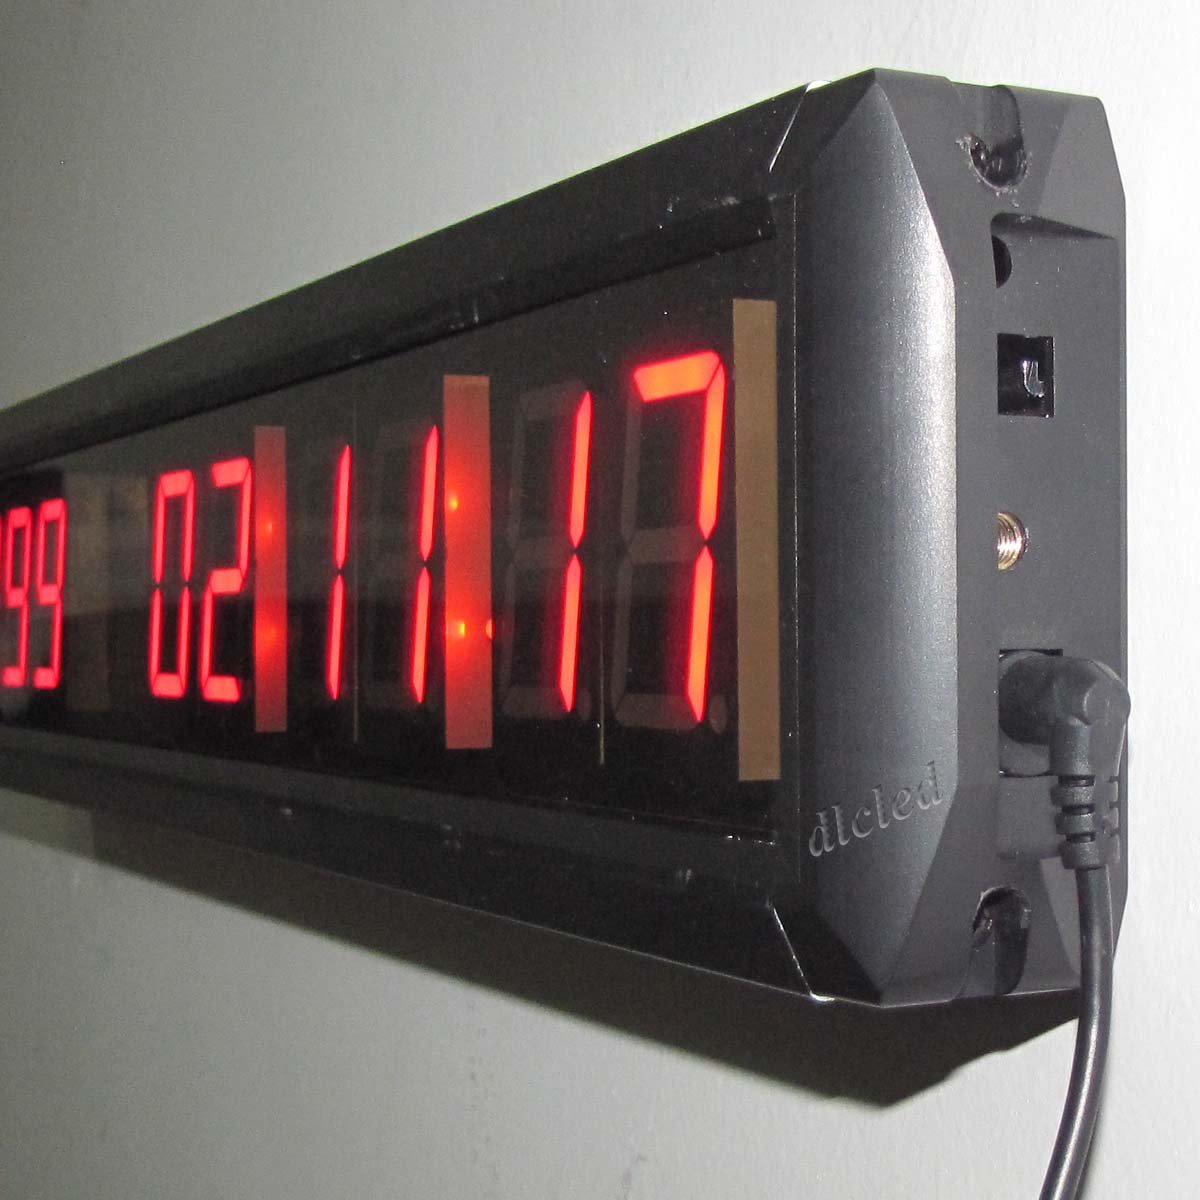 Amazon ledigtal led days countdown clock red color 18 10 amazon ledigtal led days countdown clock red color 18 10 digits count up to 10000 days with hours minutes seconds led large digital countdown clock amipublicfo Gallery